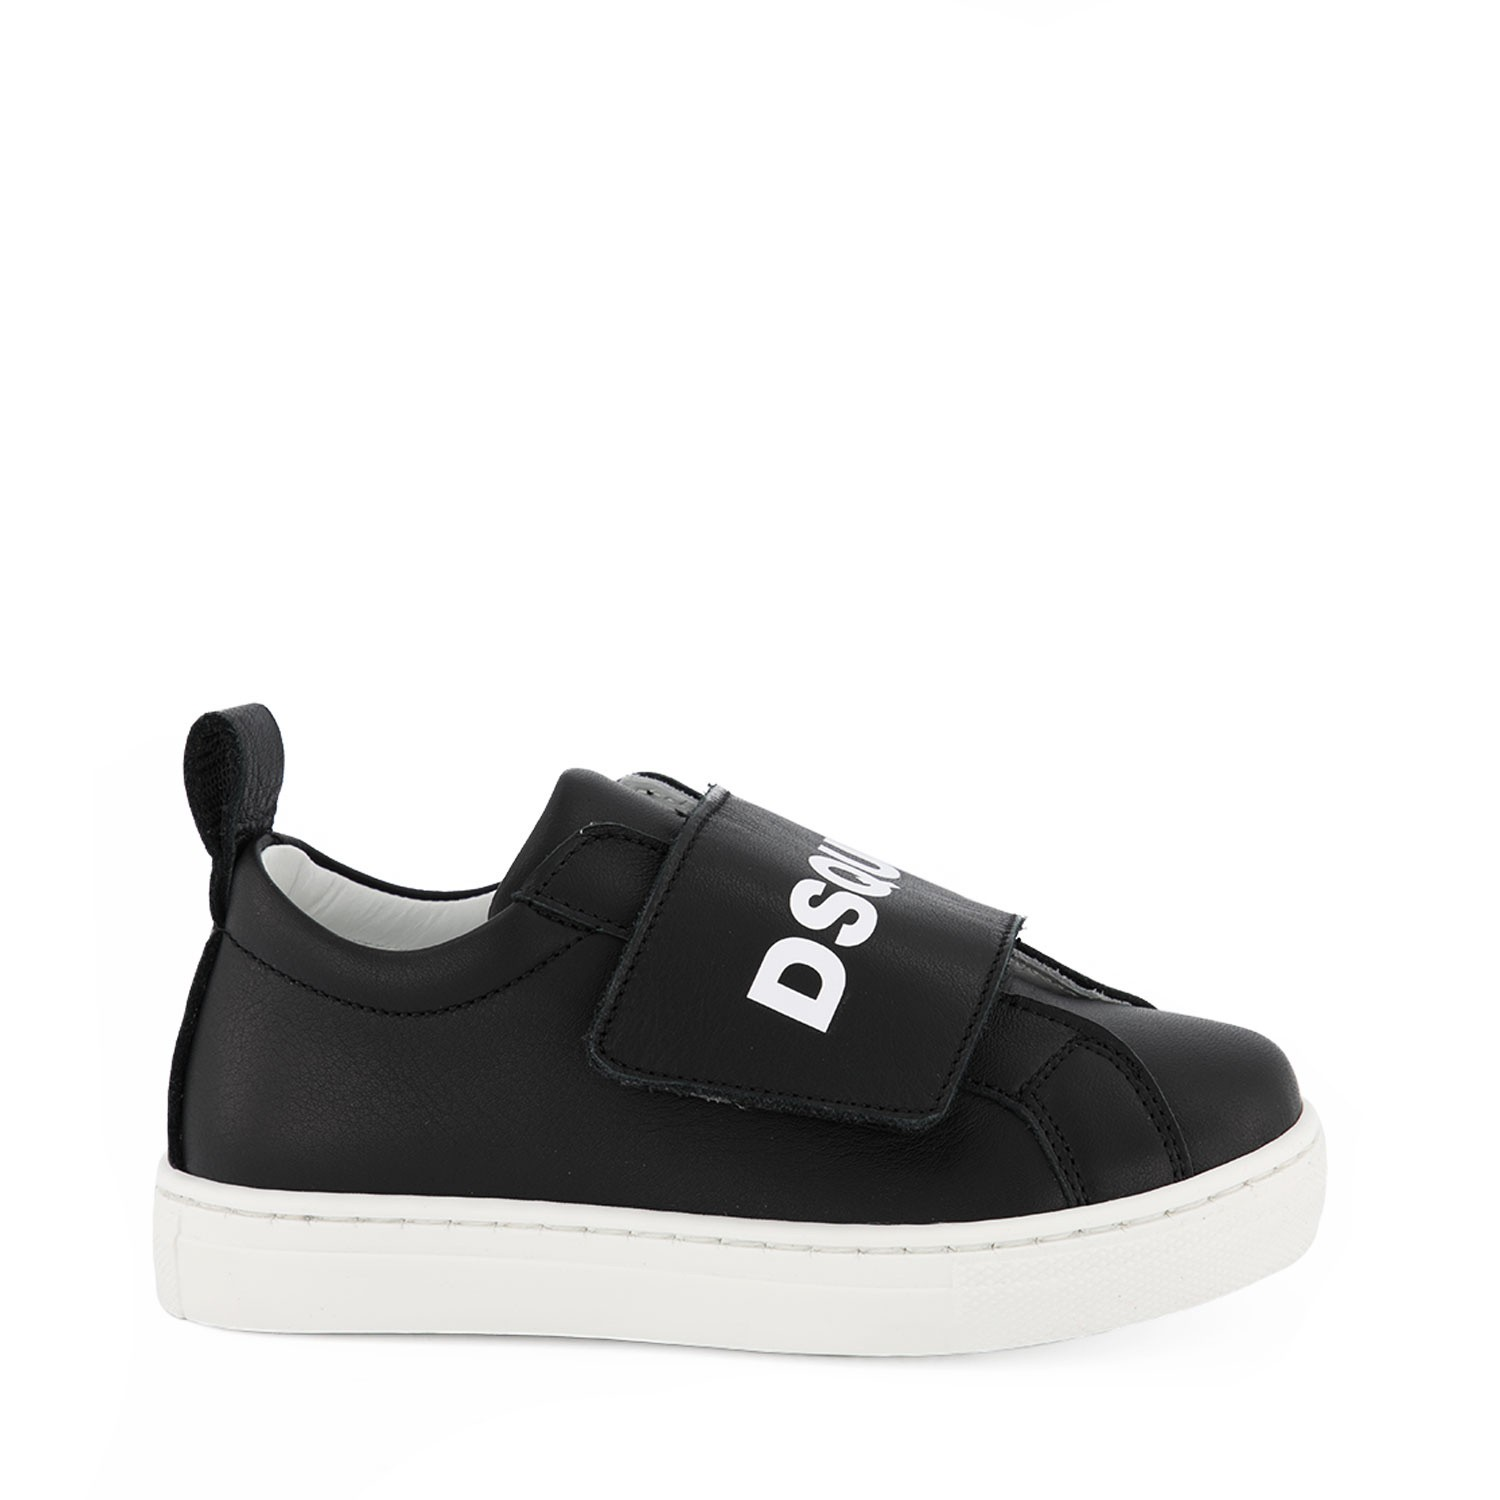 Picture of Dsquared2 63454 kids sneakers black